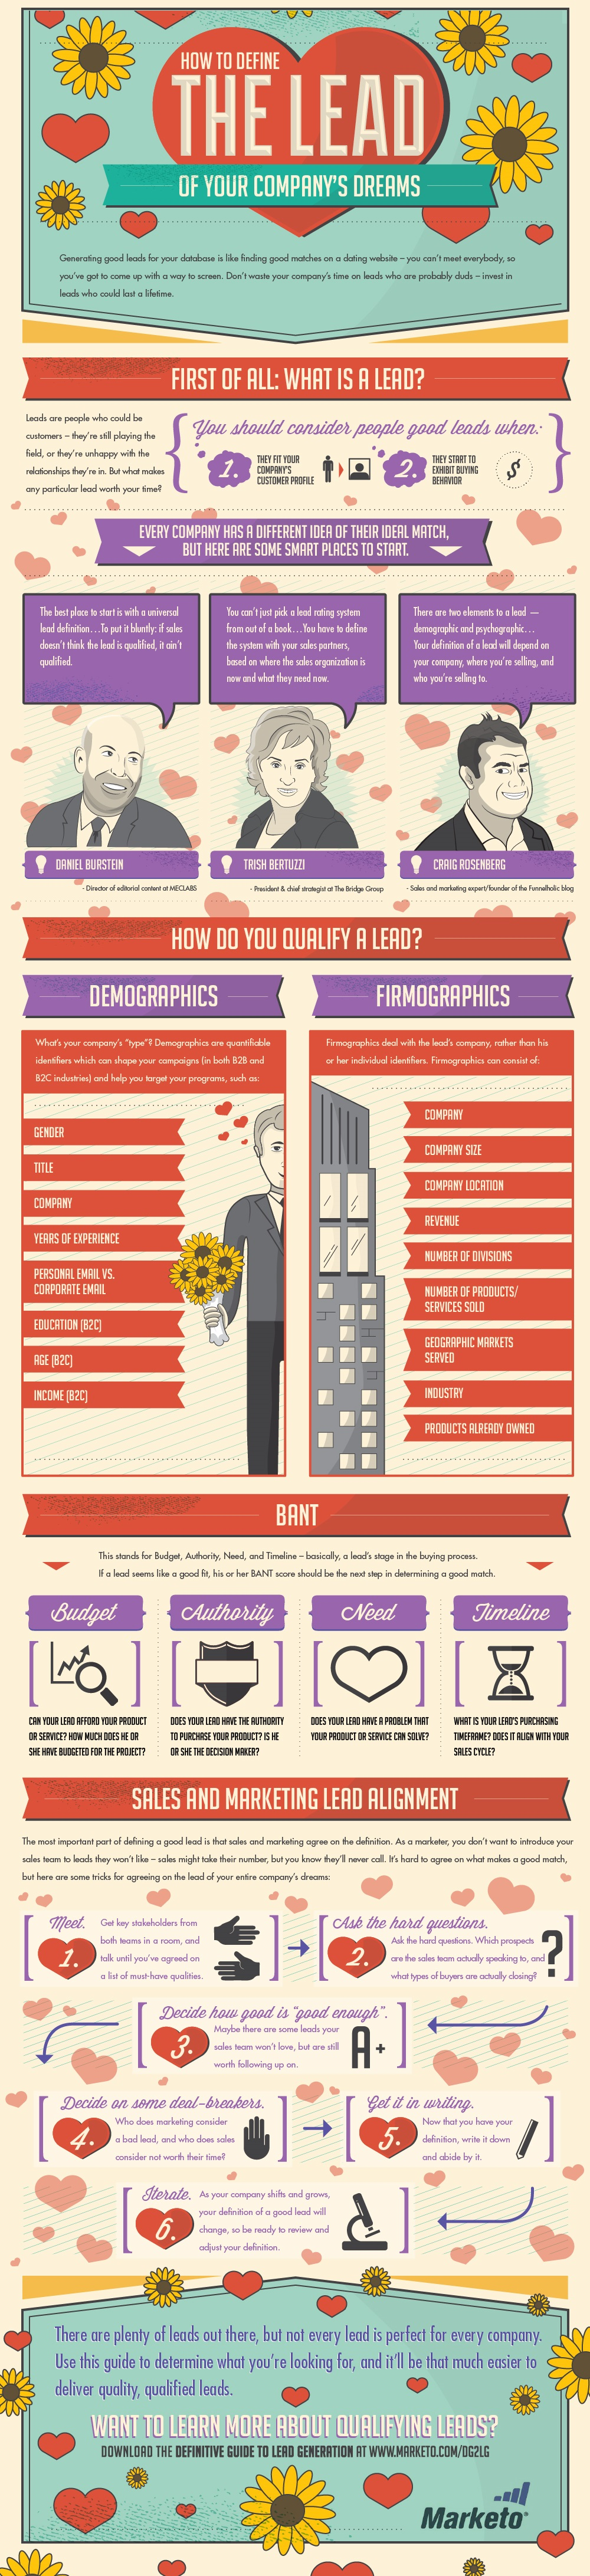 How to Define the Lead of Your Companys Dreams Infographic